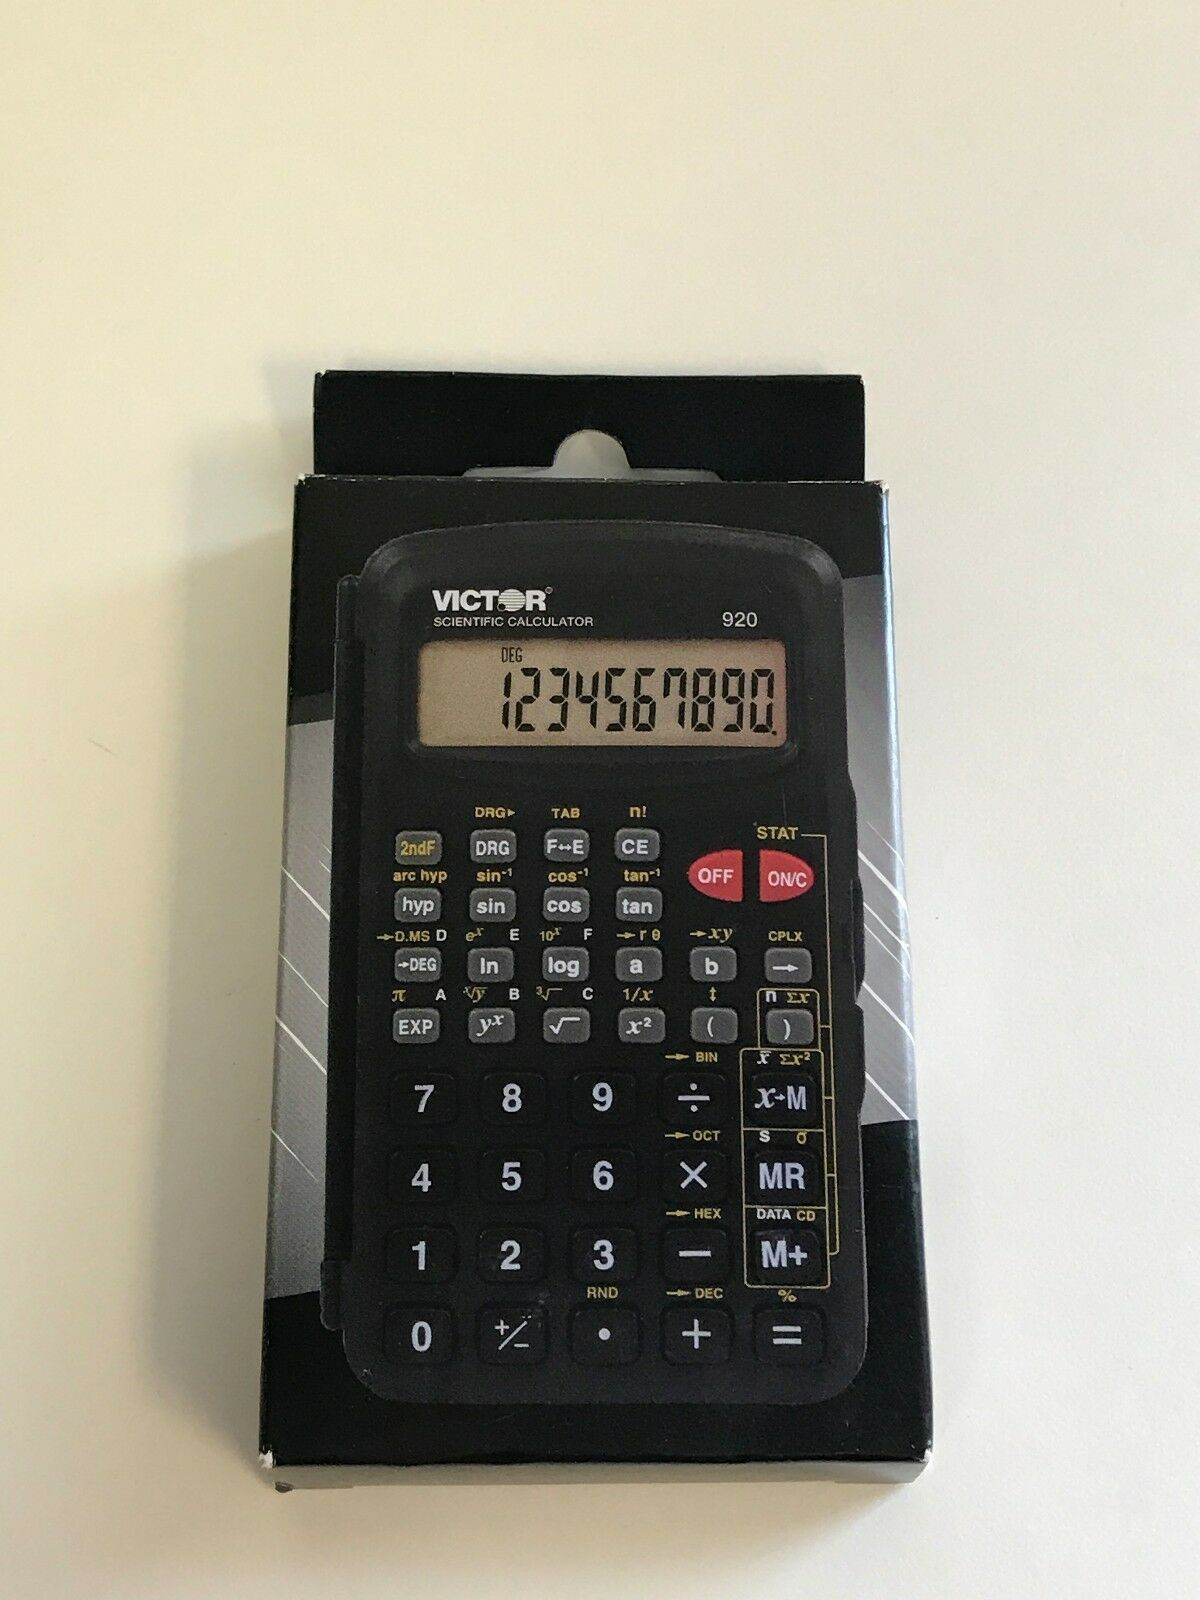 Victor Technology 920 Compact Scientific Calculator With Hinged Case, 10 Digit